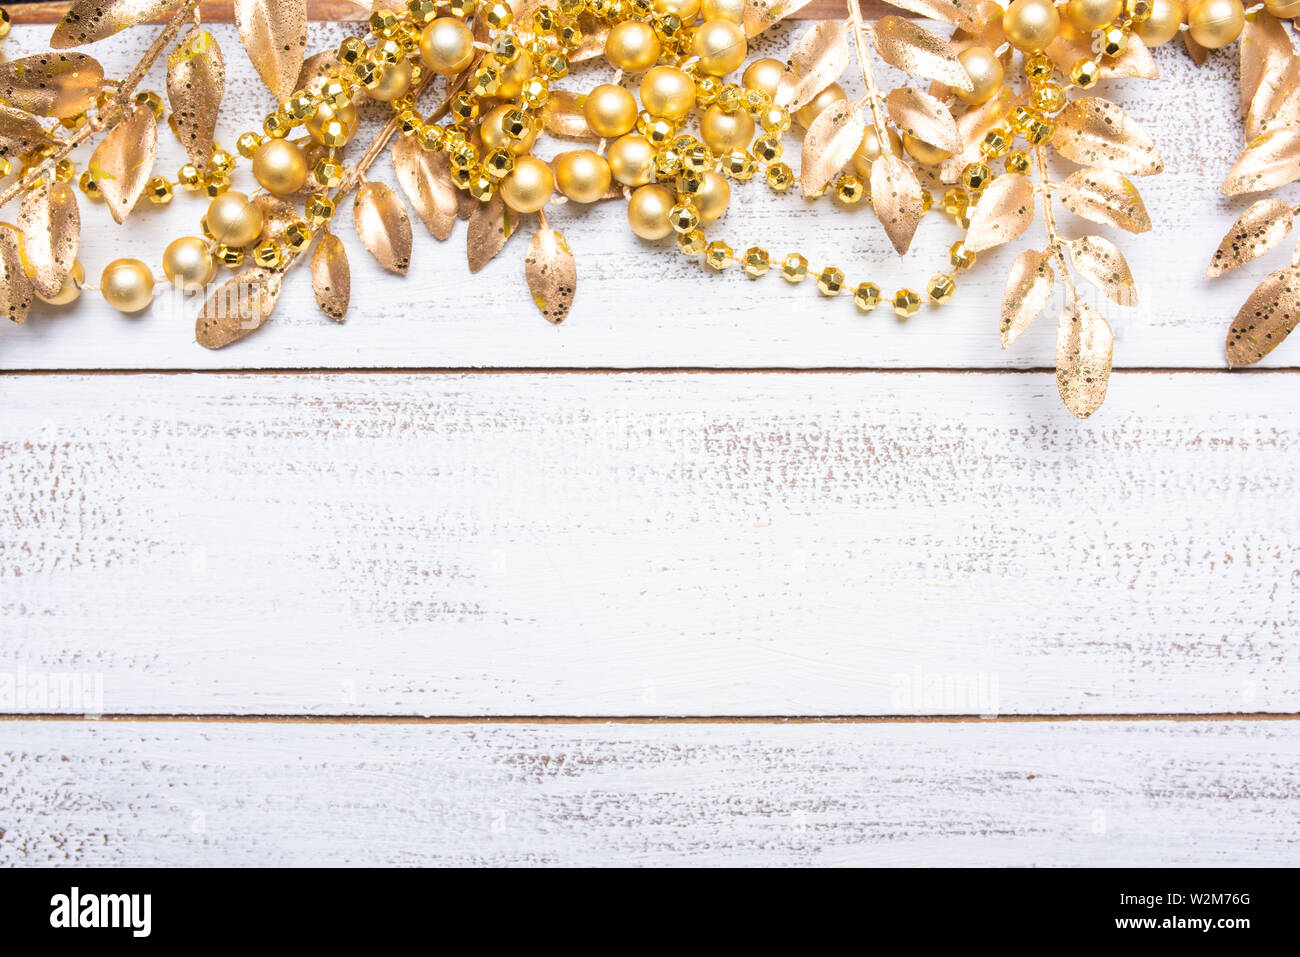 Golden colored Christmas decorations on a white wood background with copy space. Leaves, garland, berries etc. Stock Photo